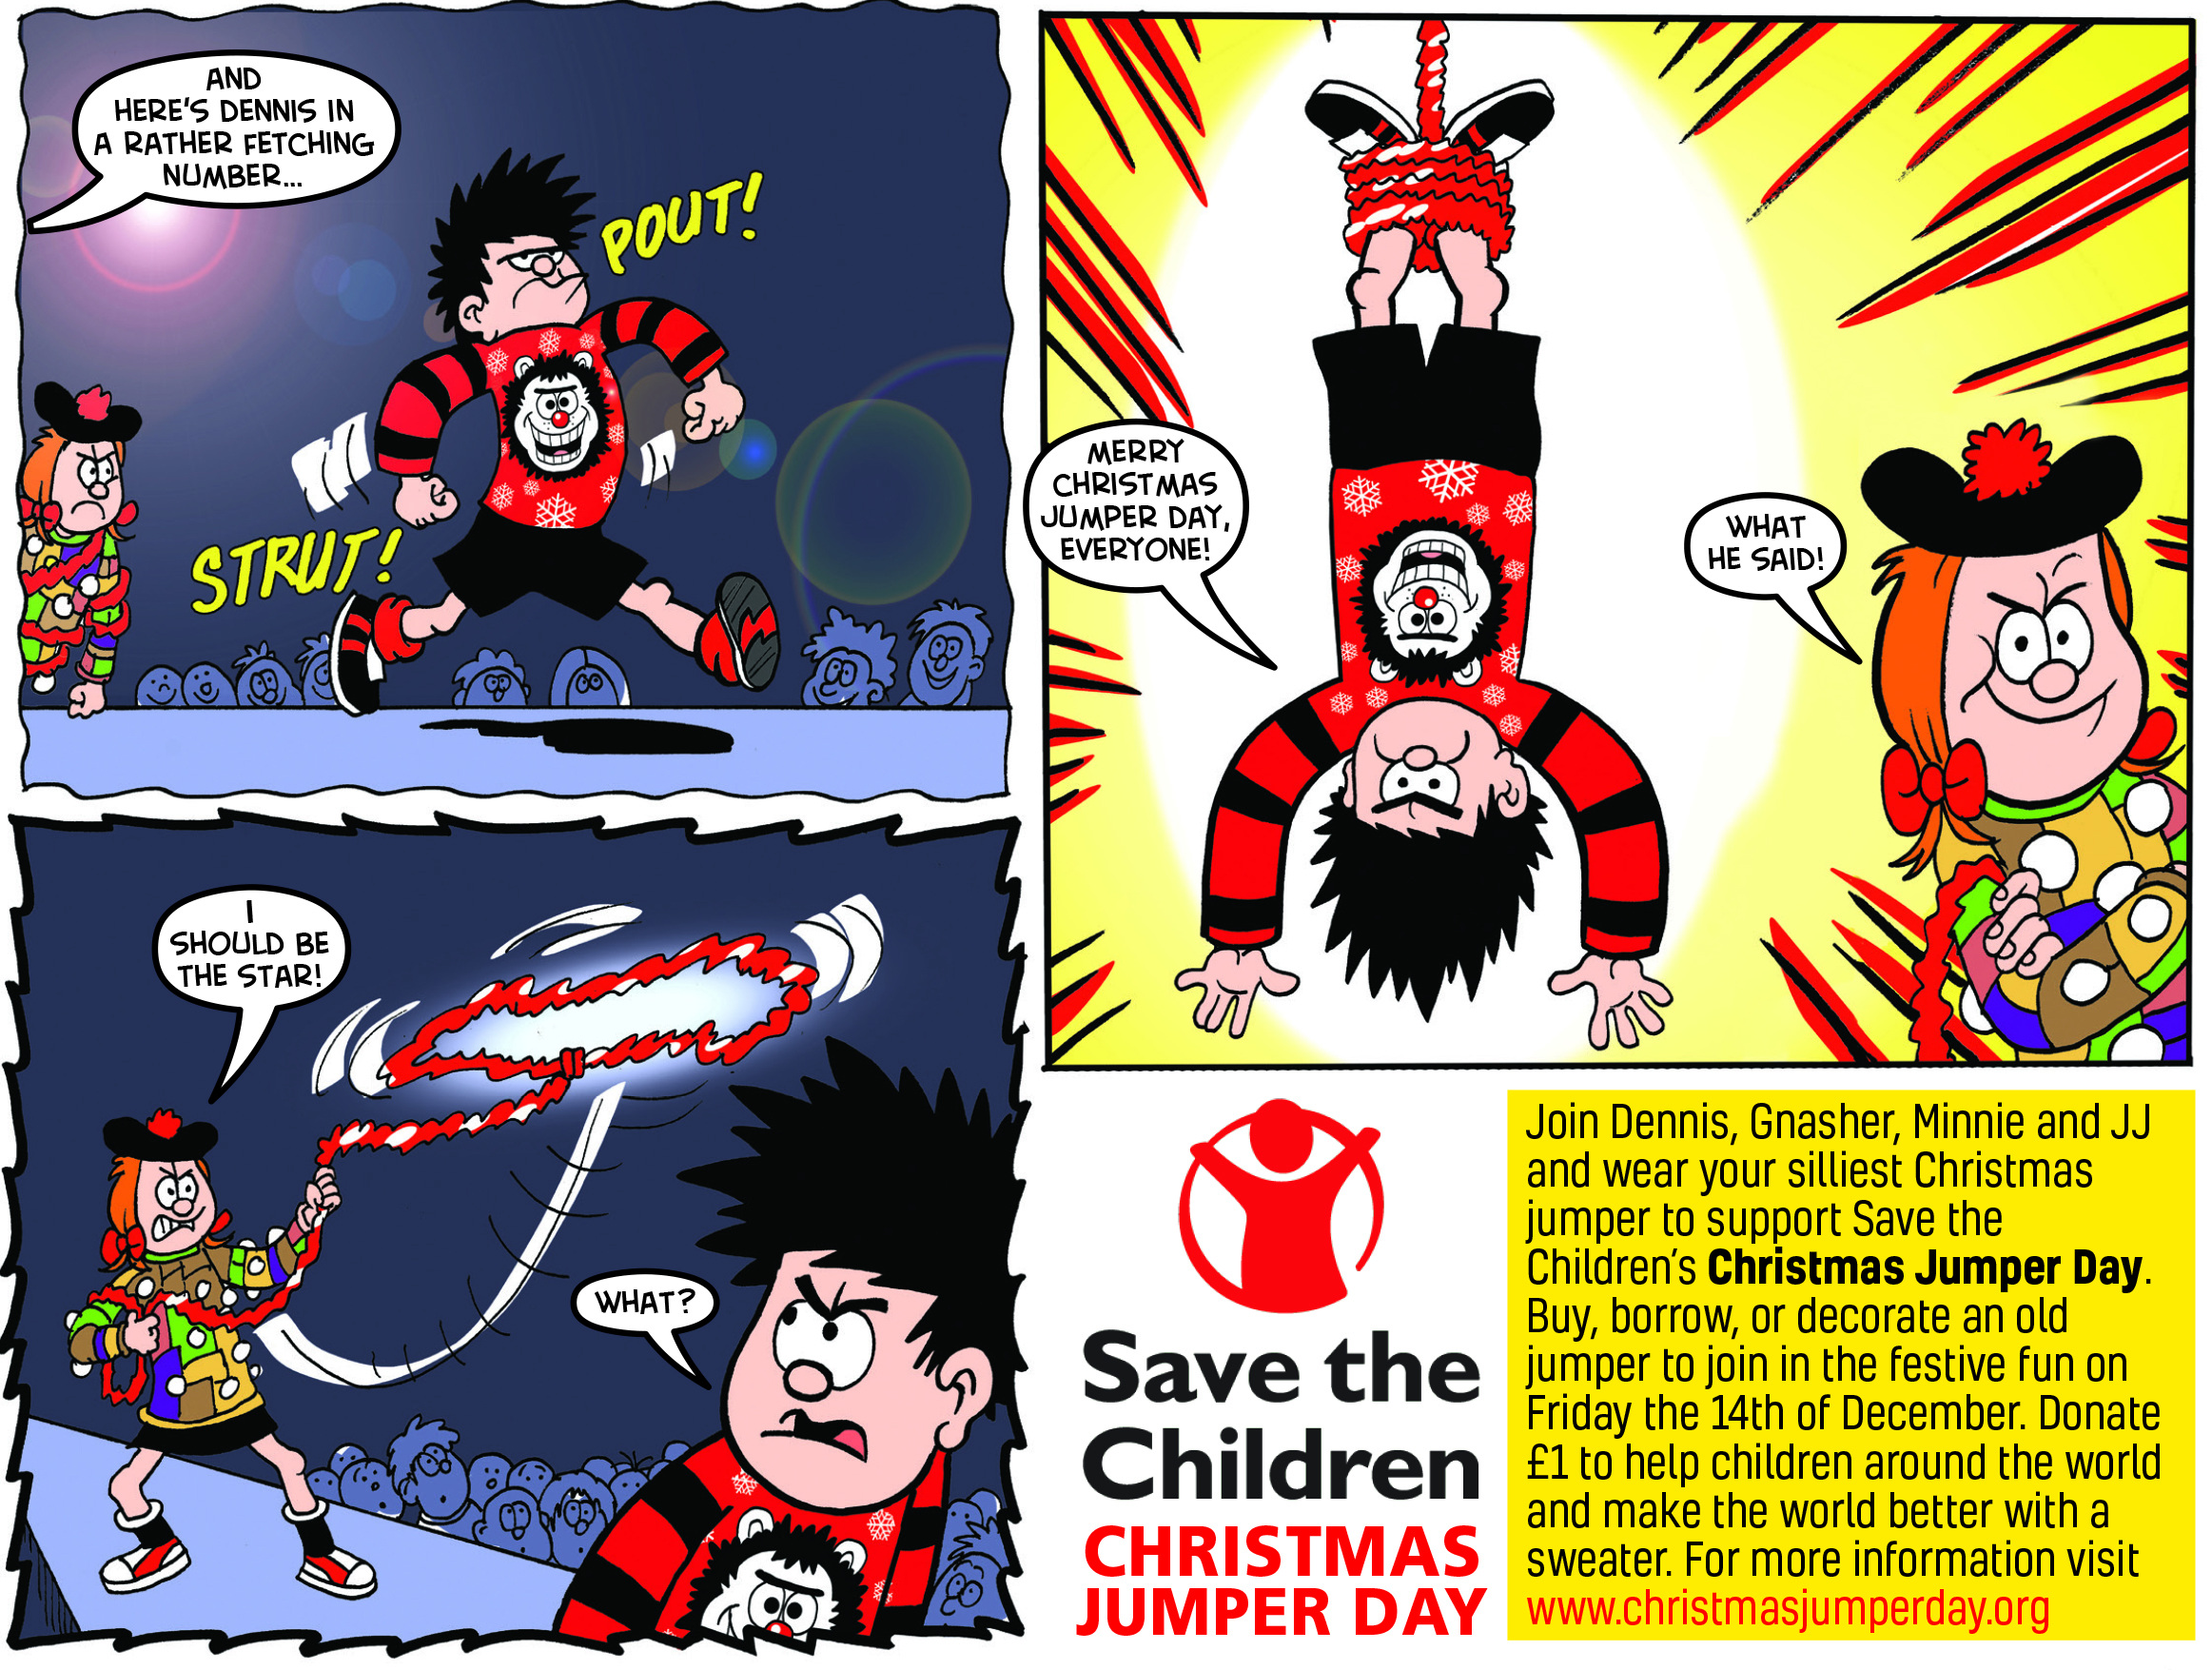 A panel from the Beano comic.